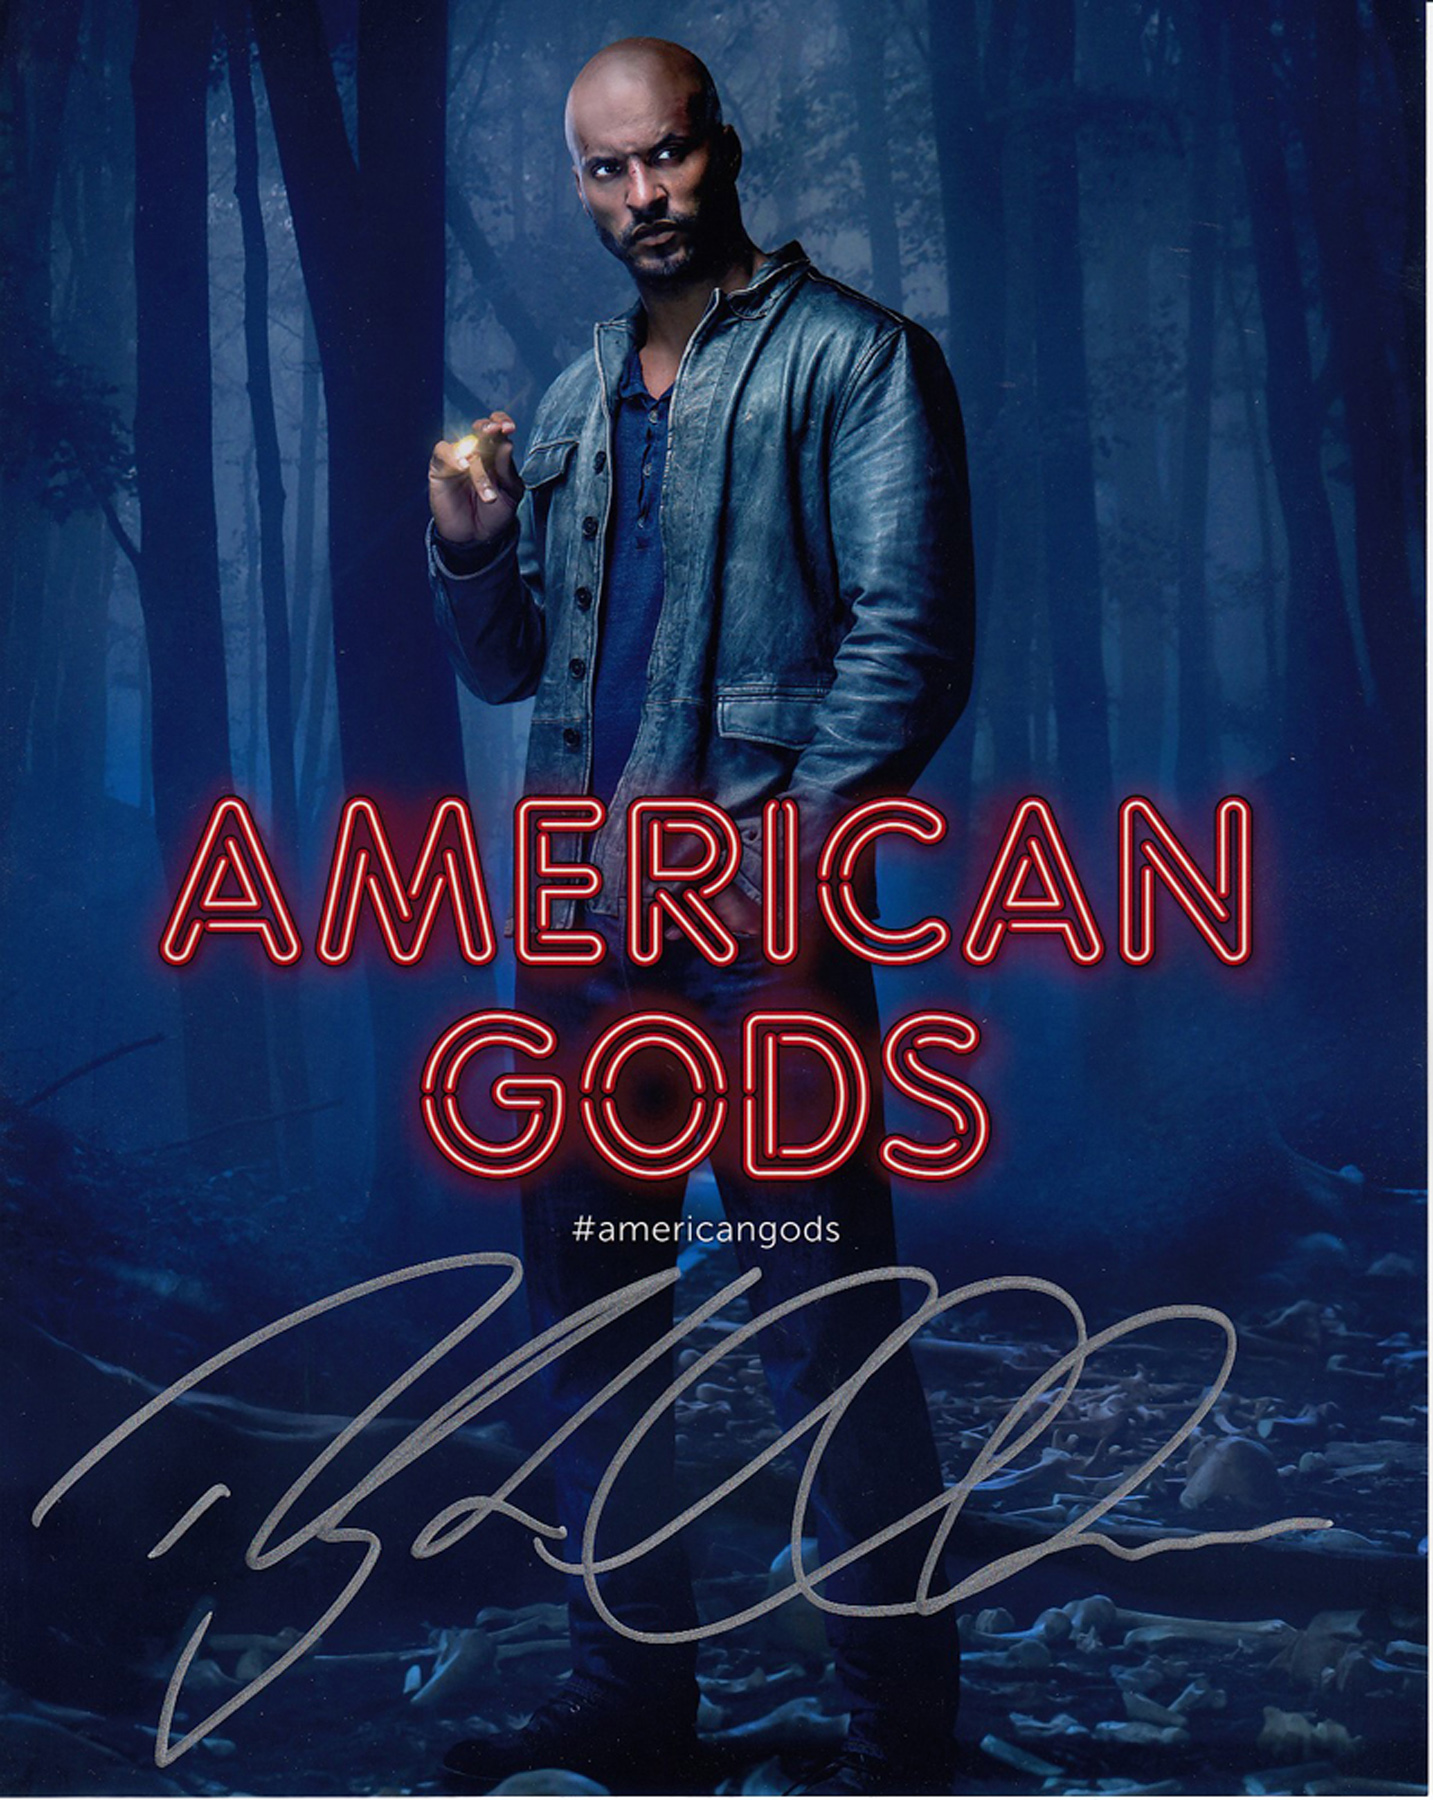 Blowout Sale! American Gods Ricky Whittle hand signed 10x8 photo. This beautiful 10x8 hand signed